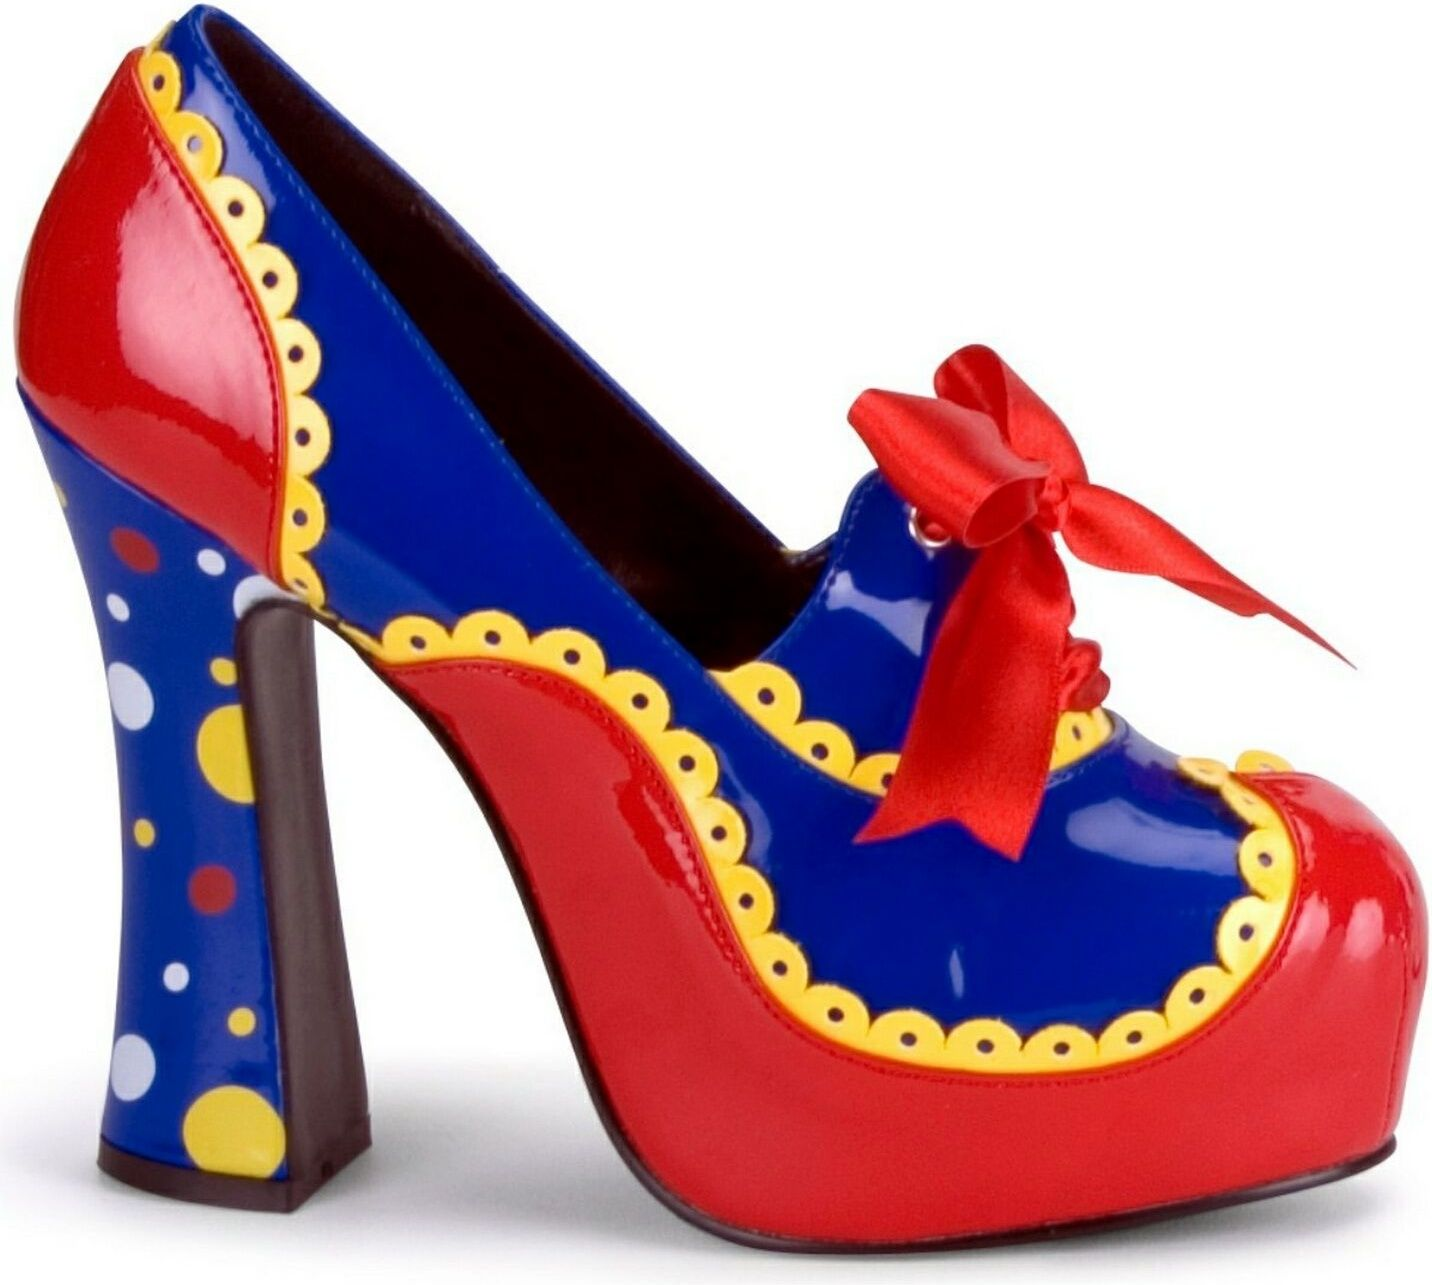 8aad85d51 You ll be the sexiest clown at the circus! Clown Heels Adult Shoes ...